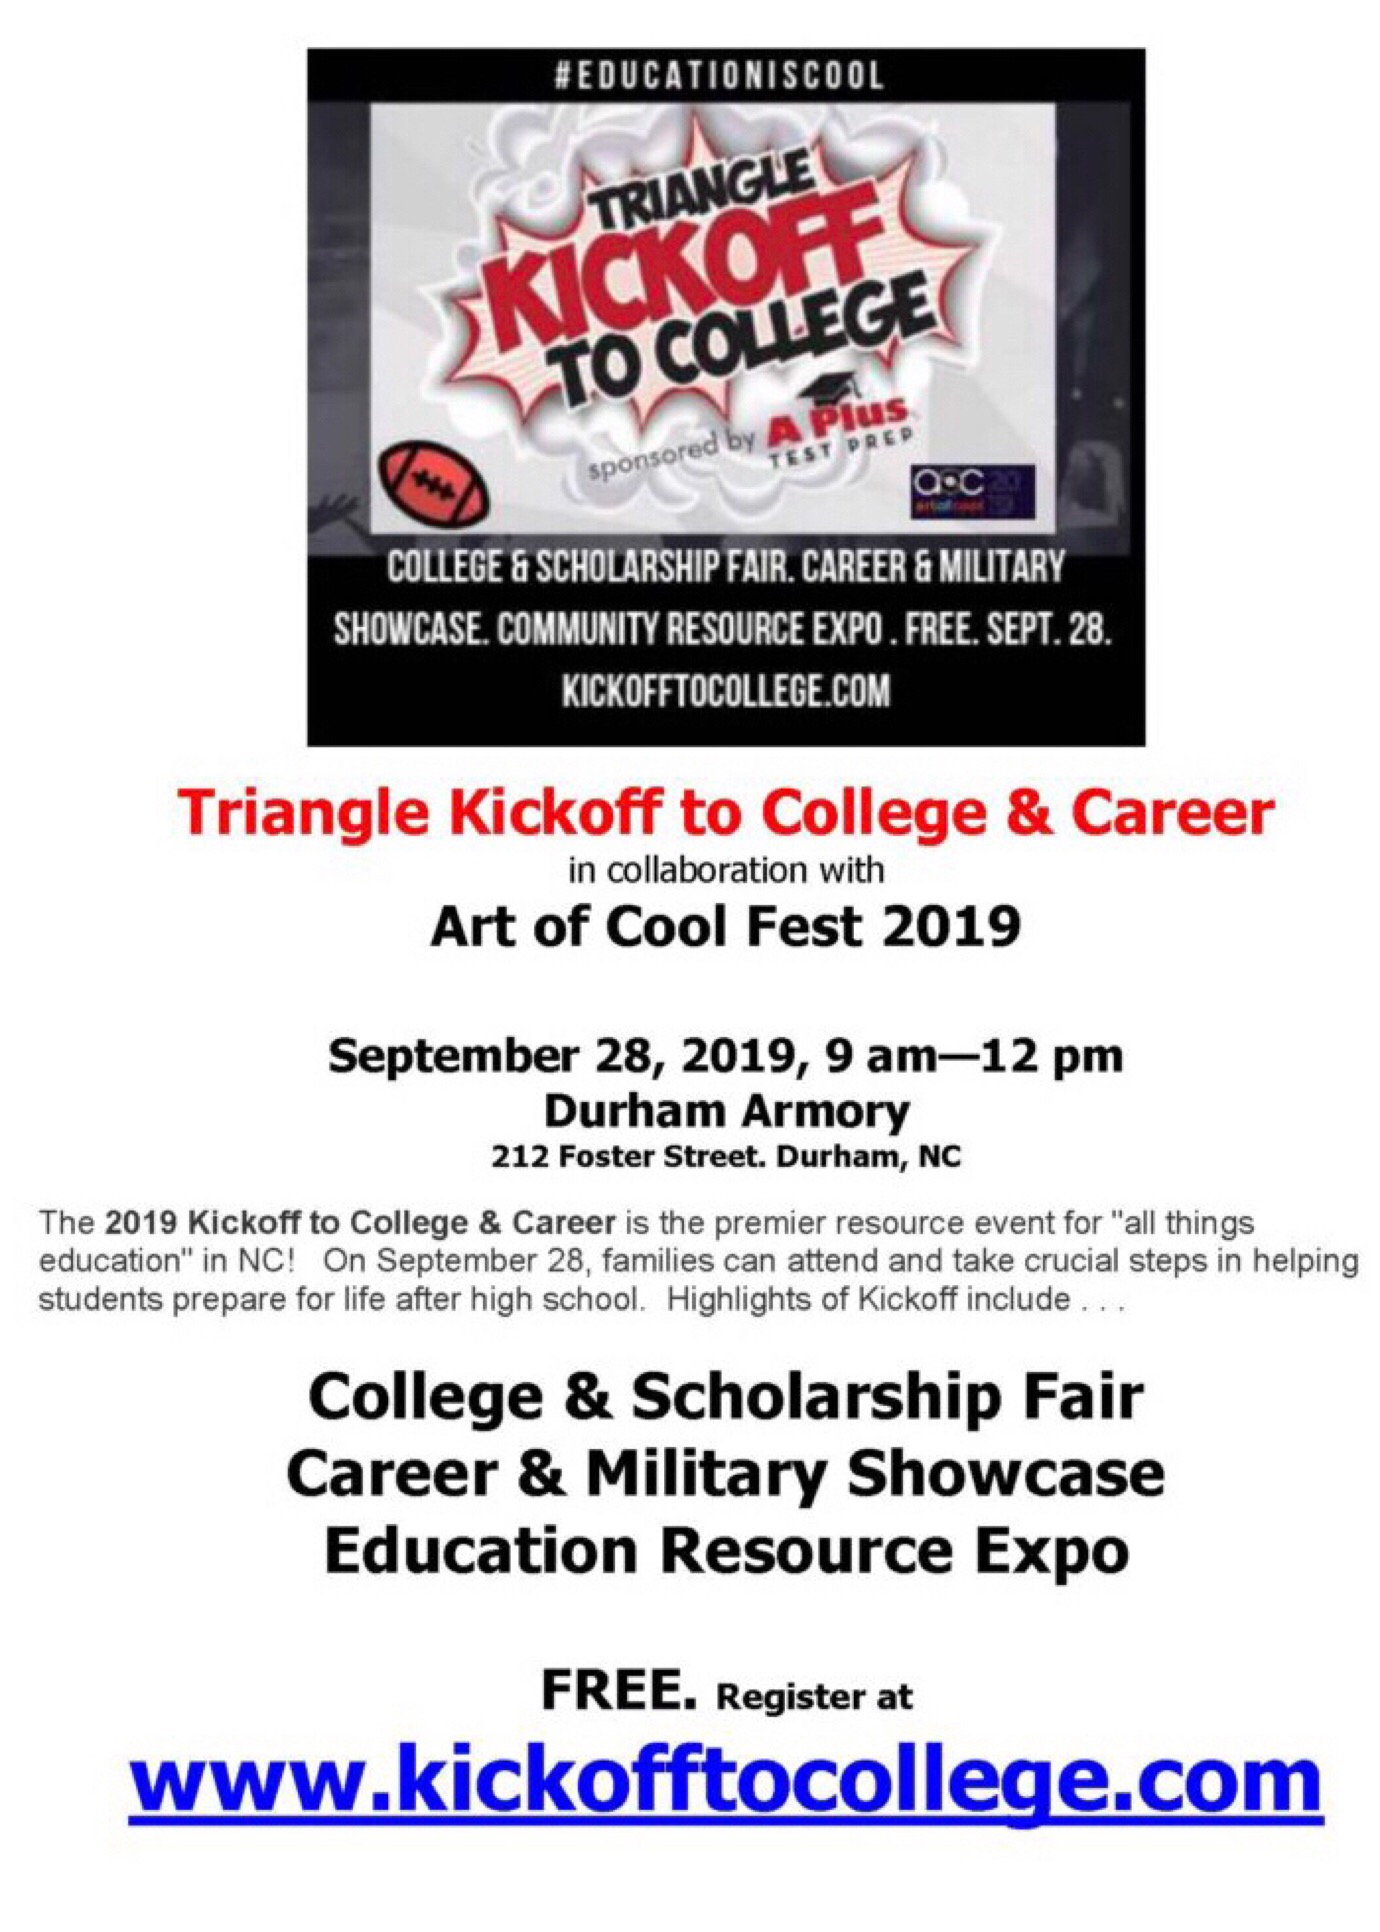 Kickoff To College Career 2019 In Collaboration With Art Of